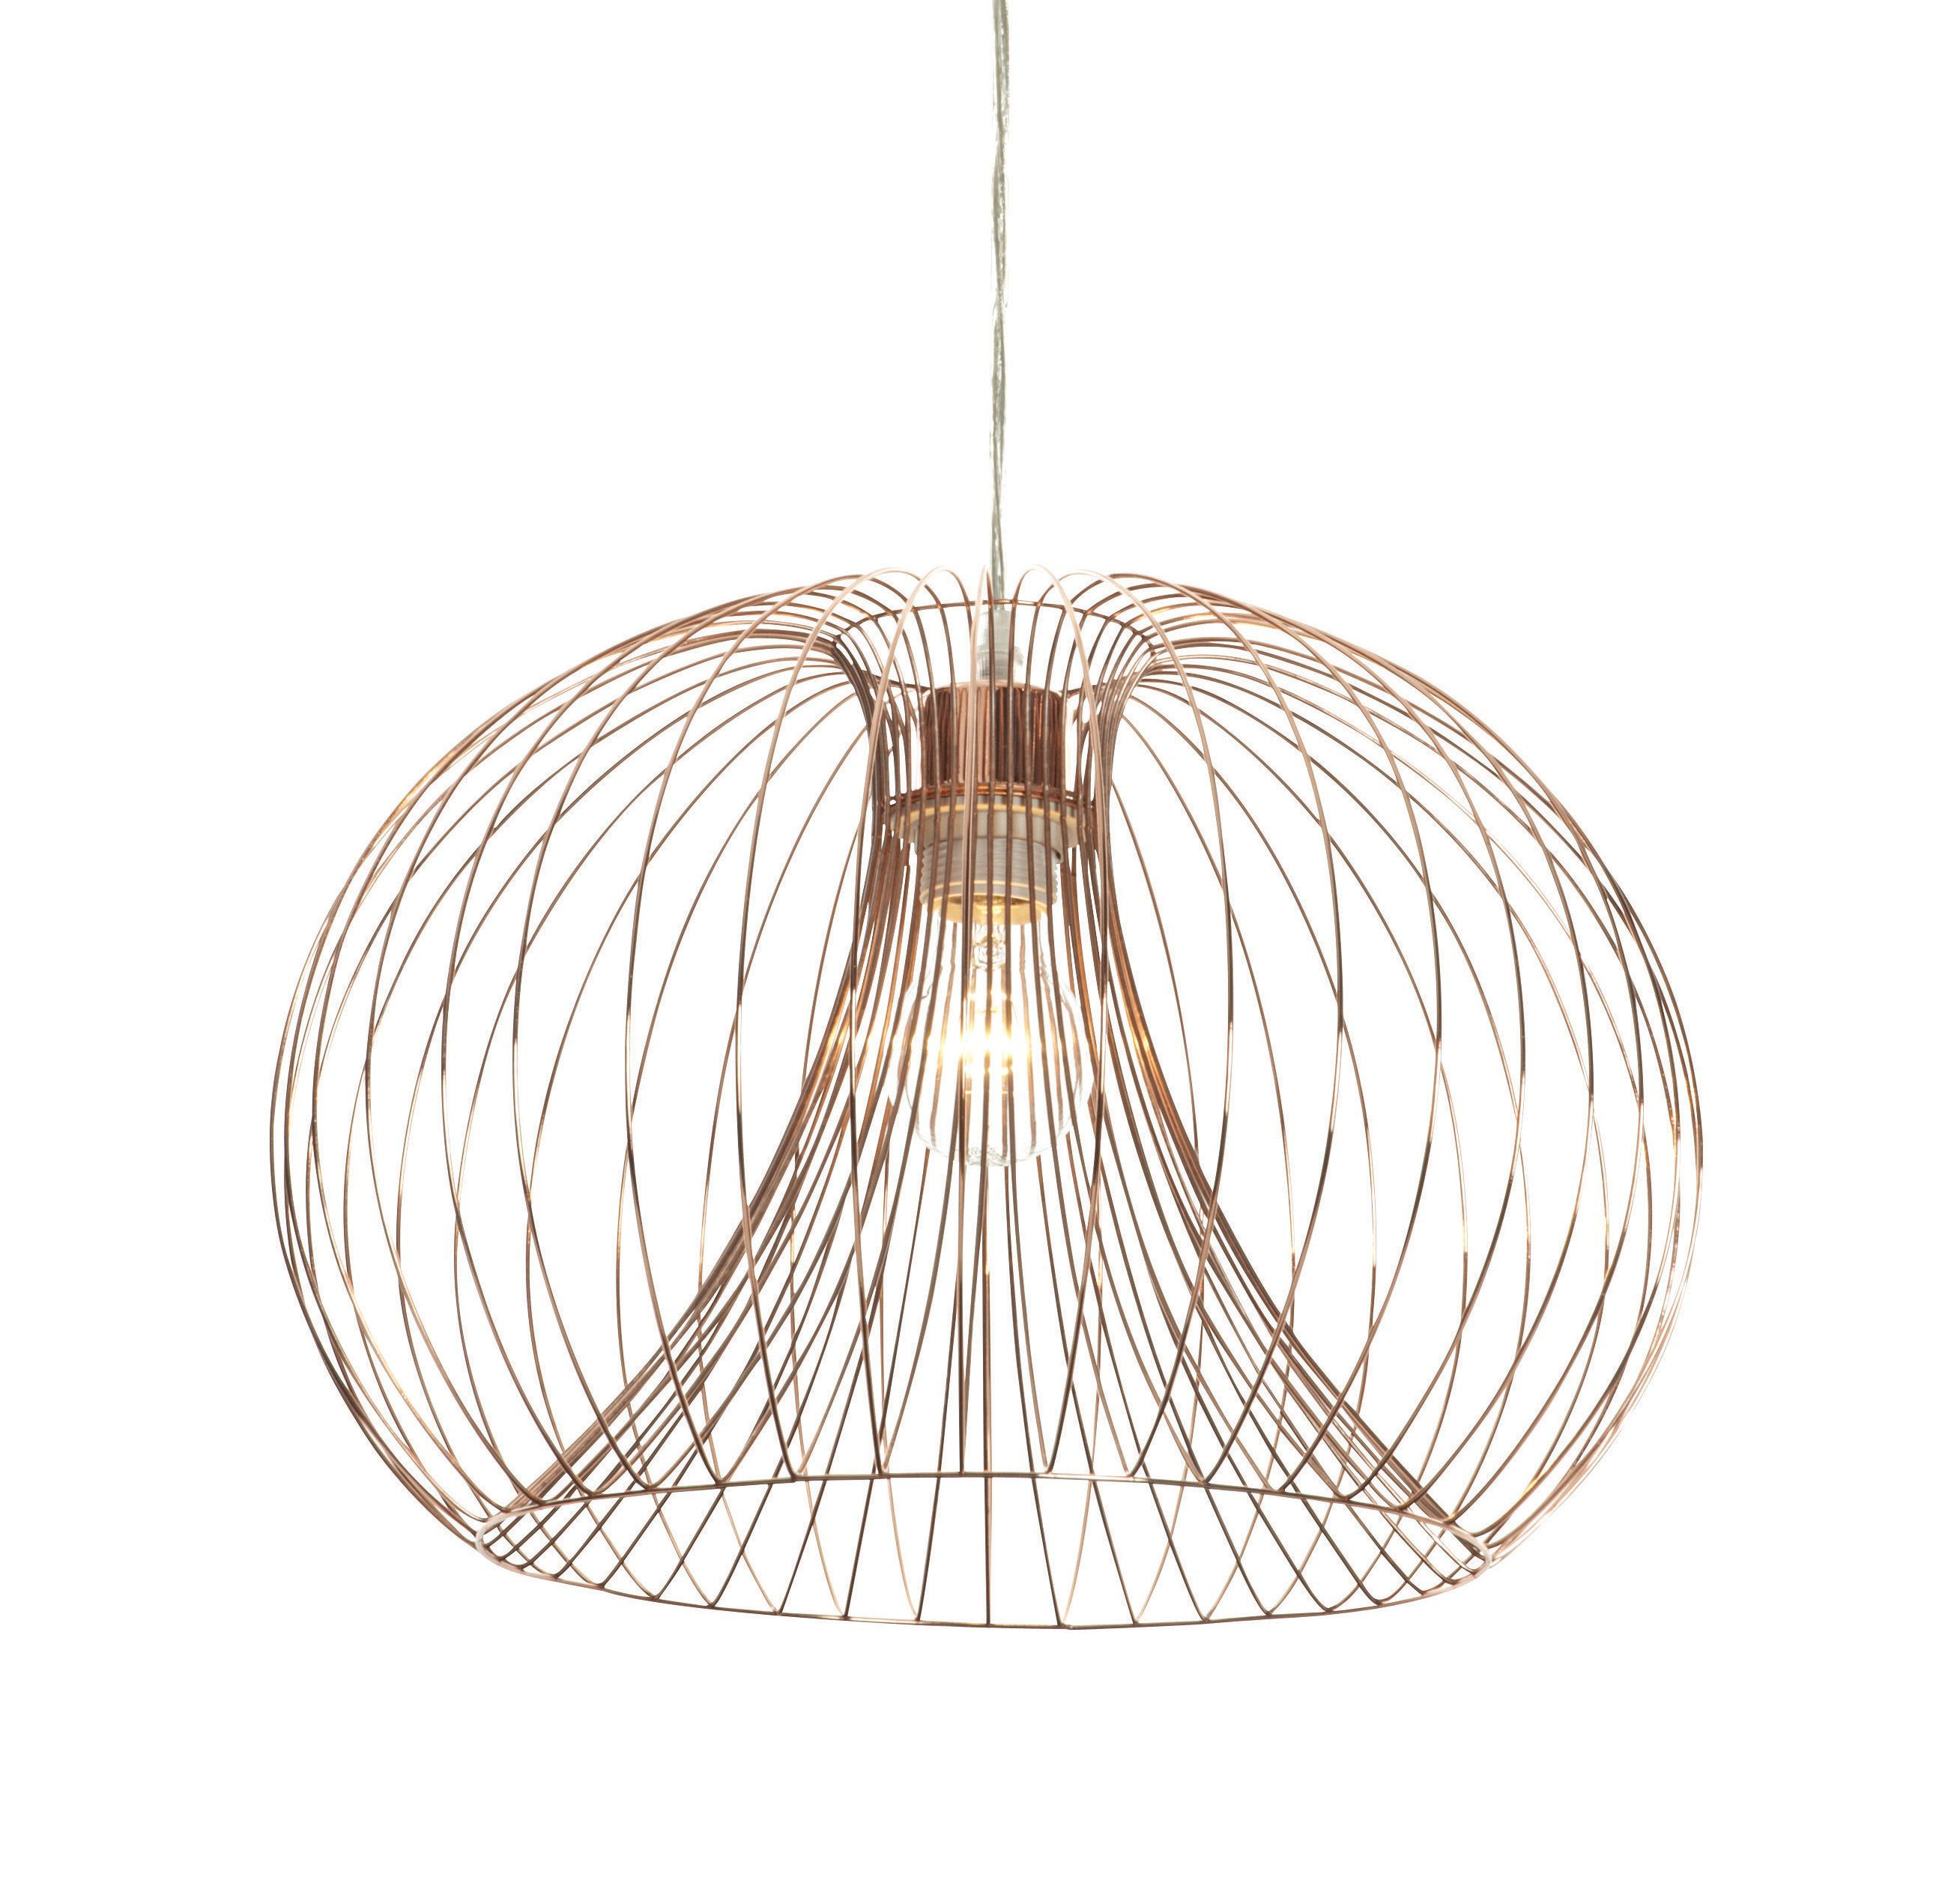 creative rustic lighting ideas in 2019 for the home bedroom jonas copper wire pendant ceiling light [ 2592 x 2541 Pixel ]